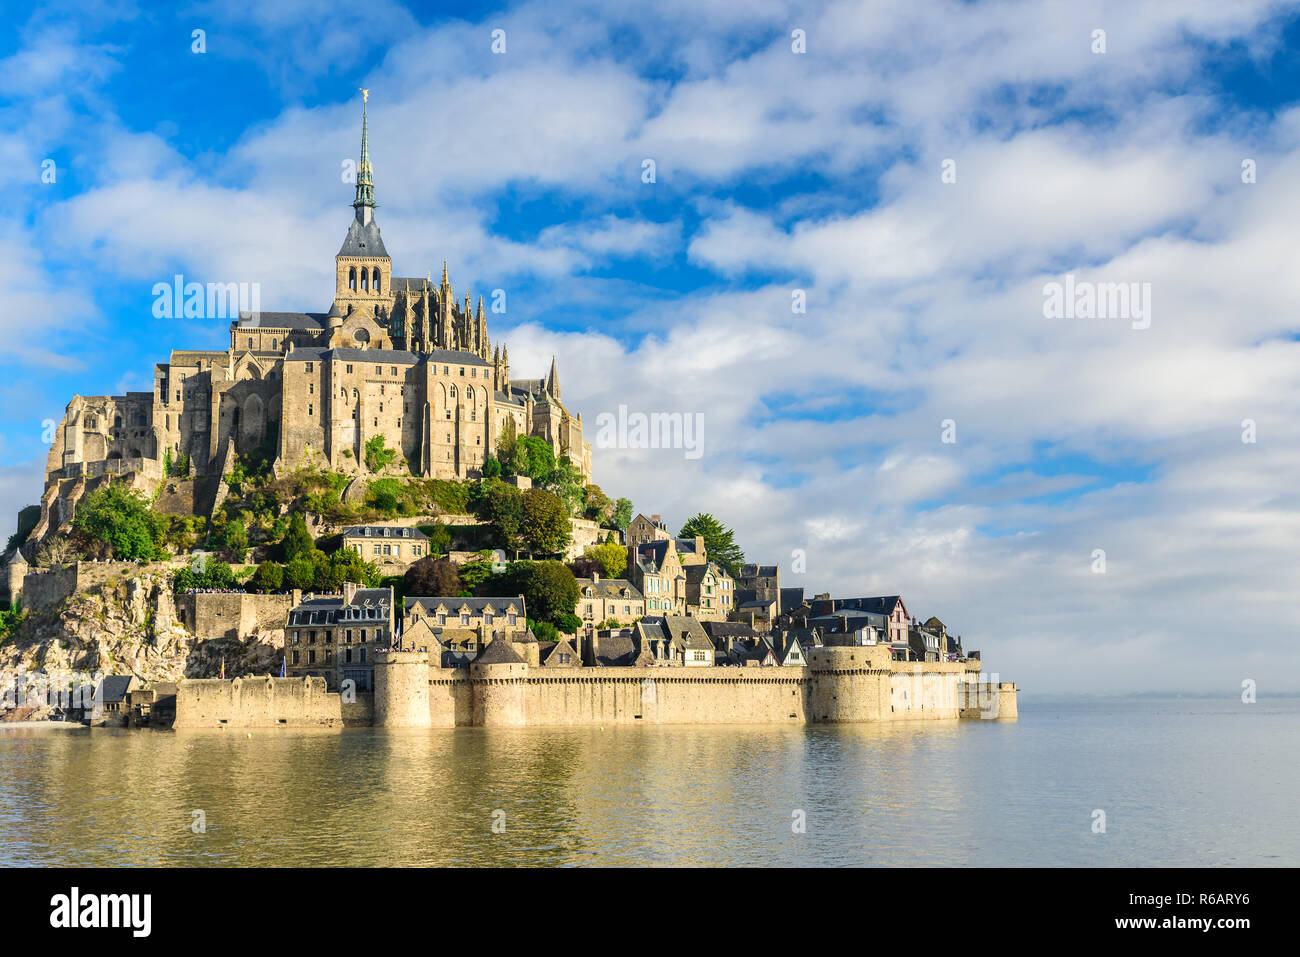 Mont Saint Michel abbey on the island, Normandy, Northern France, Europe at sunrise - Stock Image